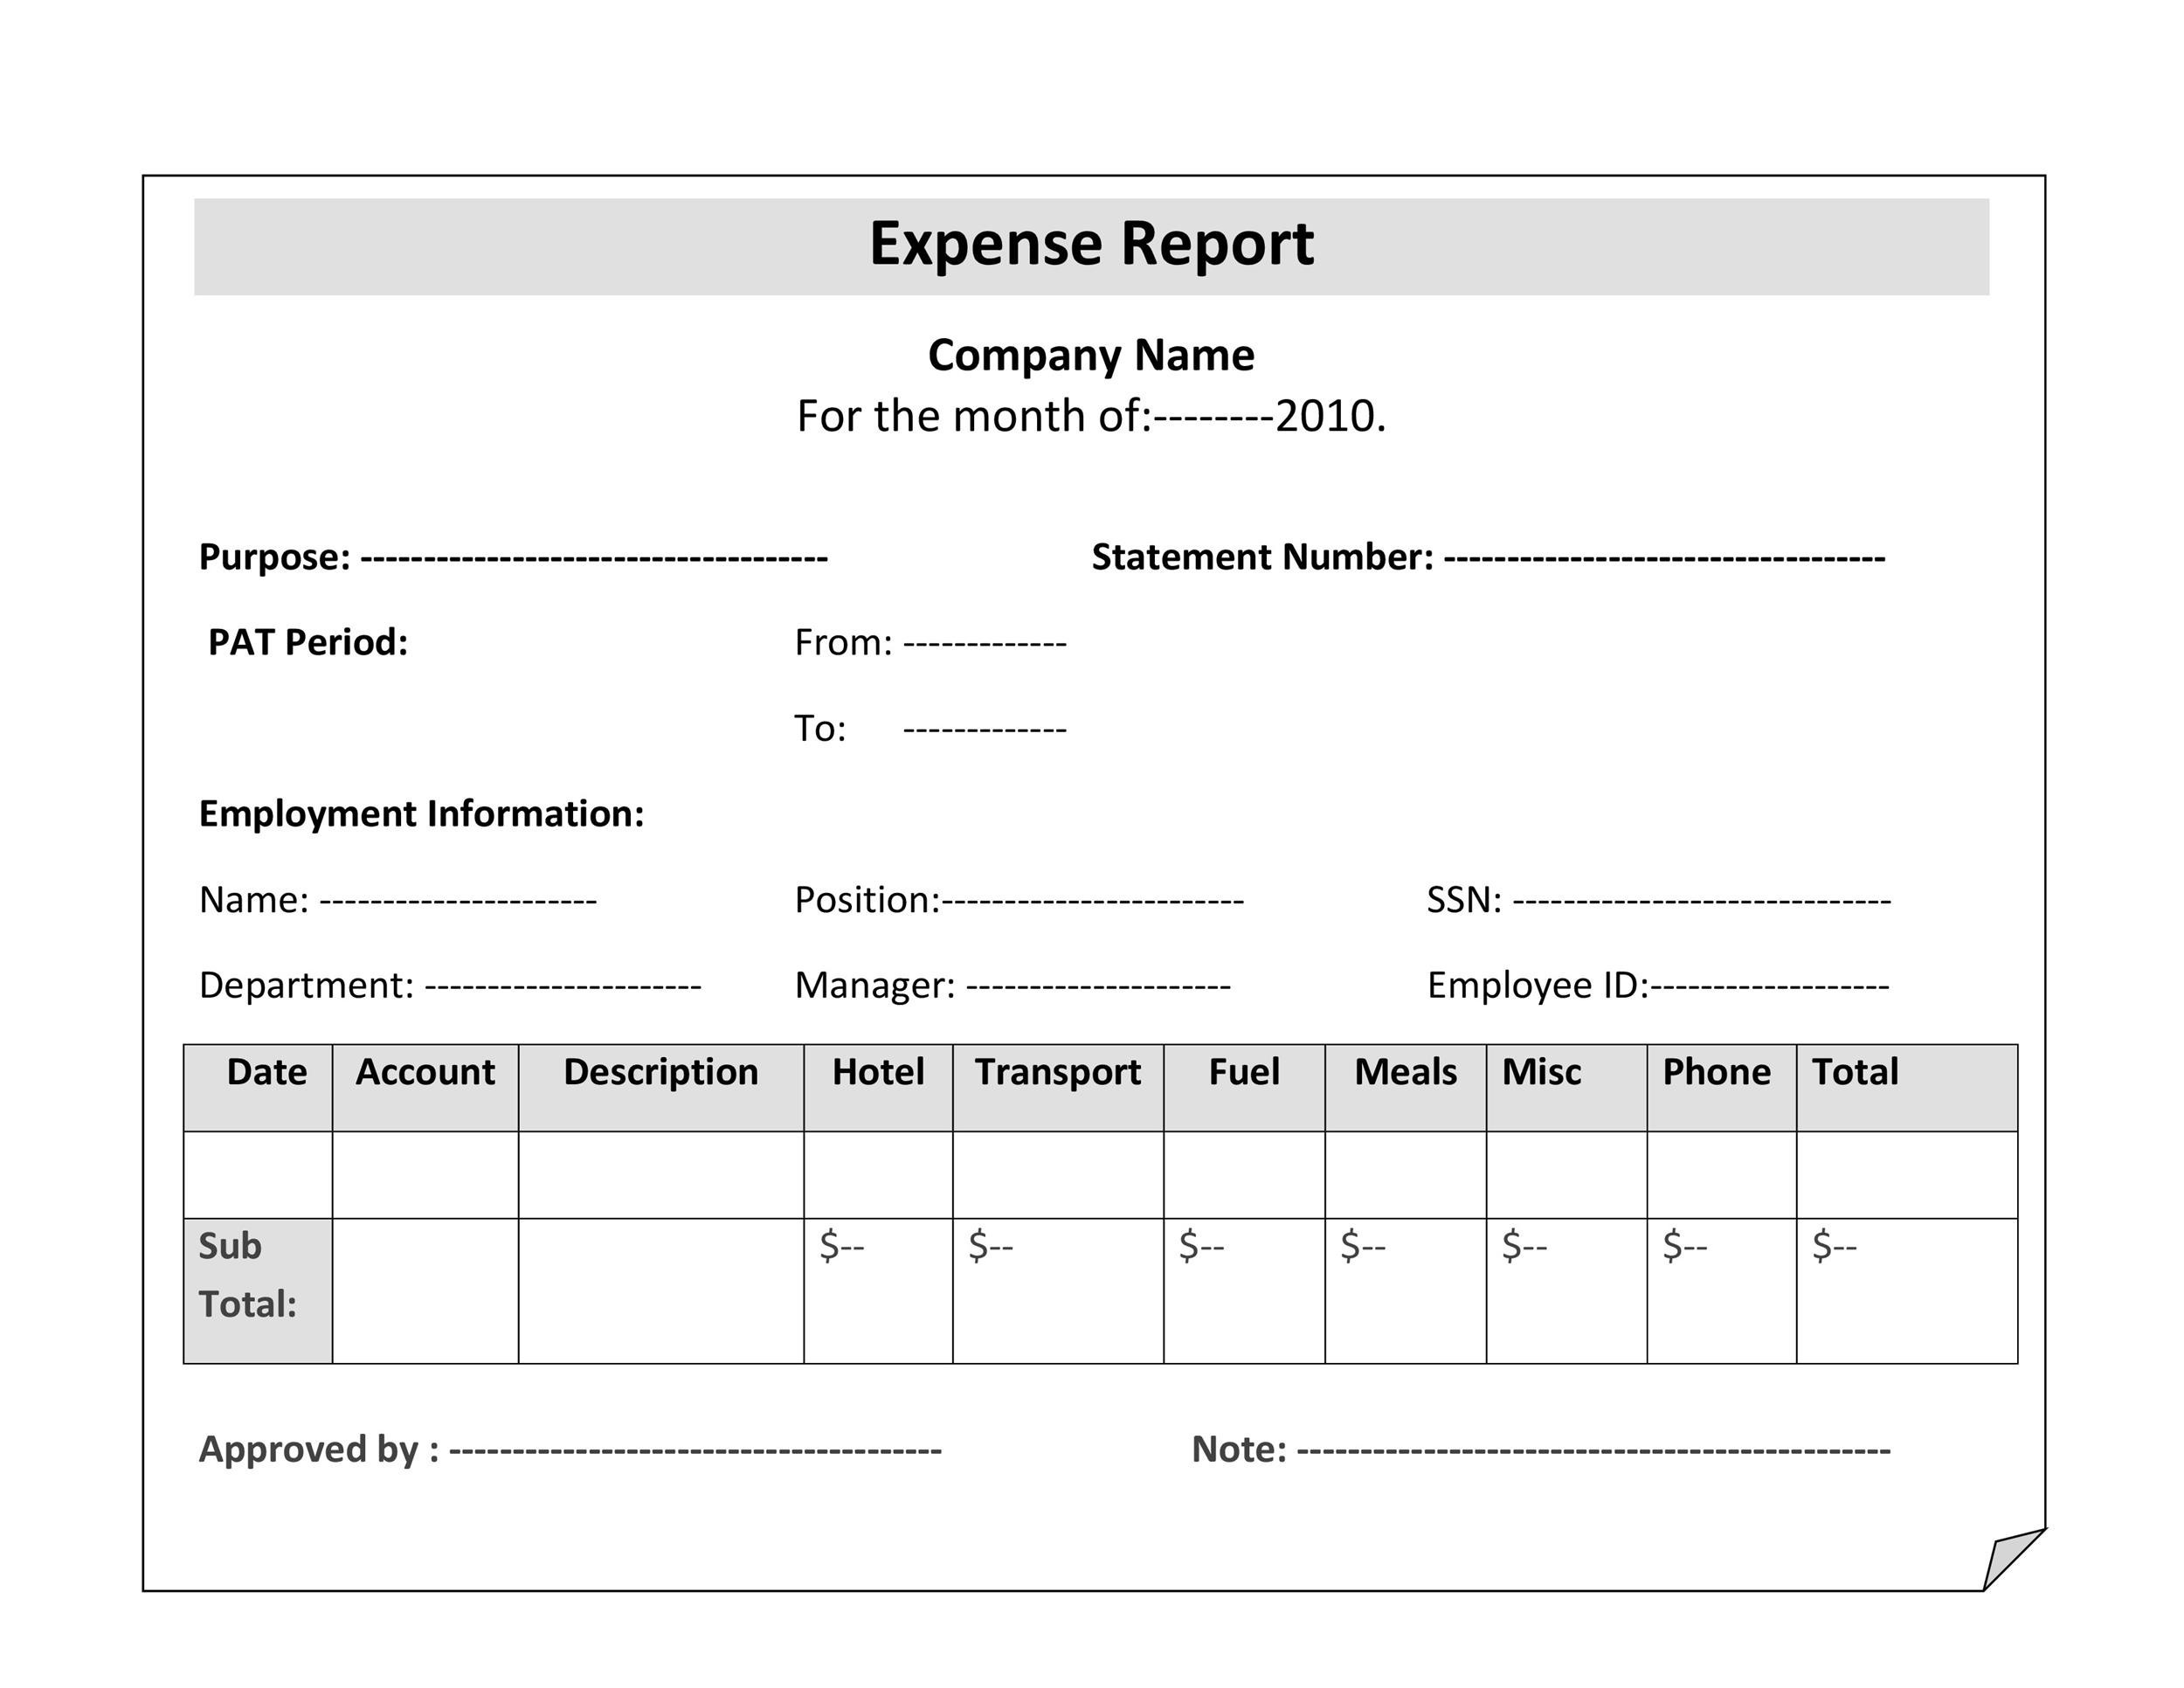 40+ Expense Report Templates to Help you Save Money - Template Lab